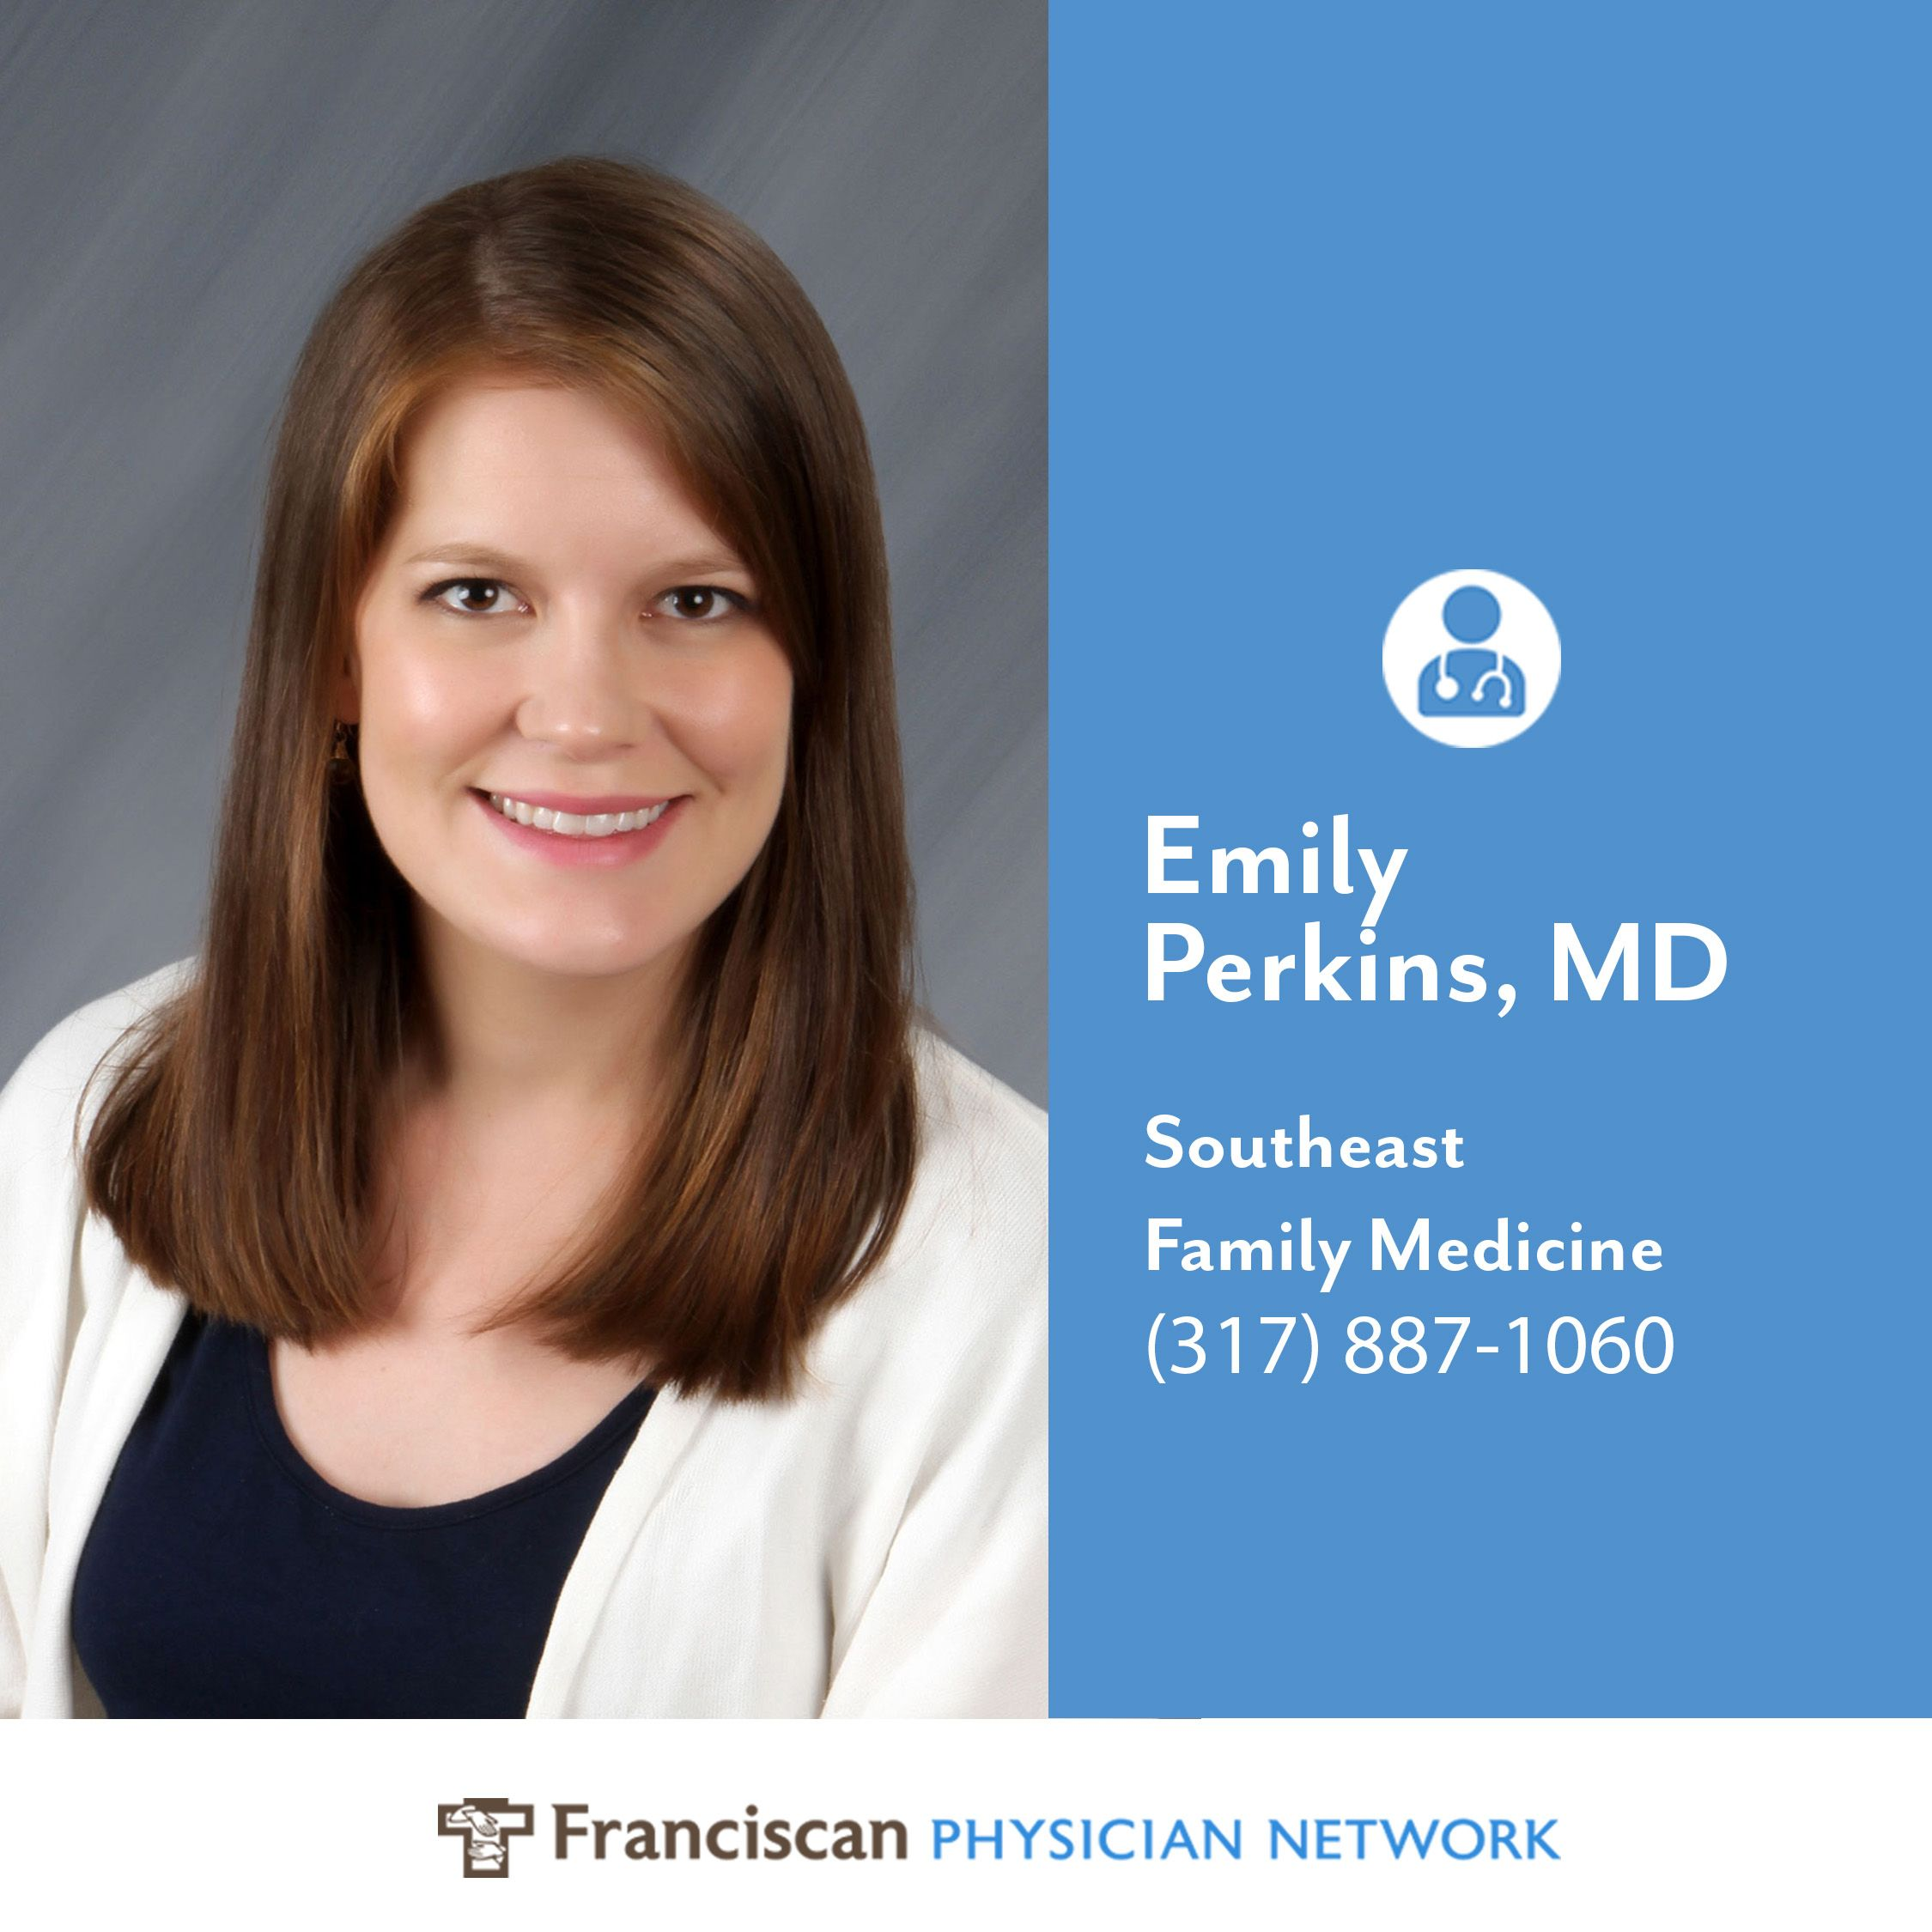 Dr. Emily Perkins is a primary care doctor at Franciscan